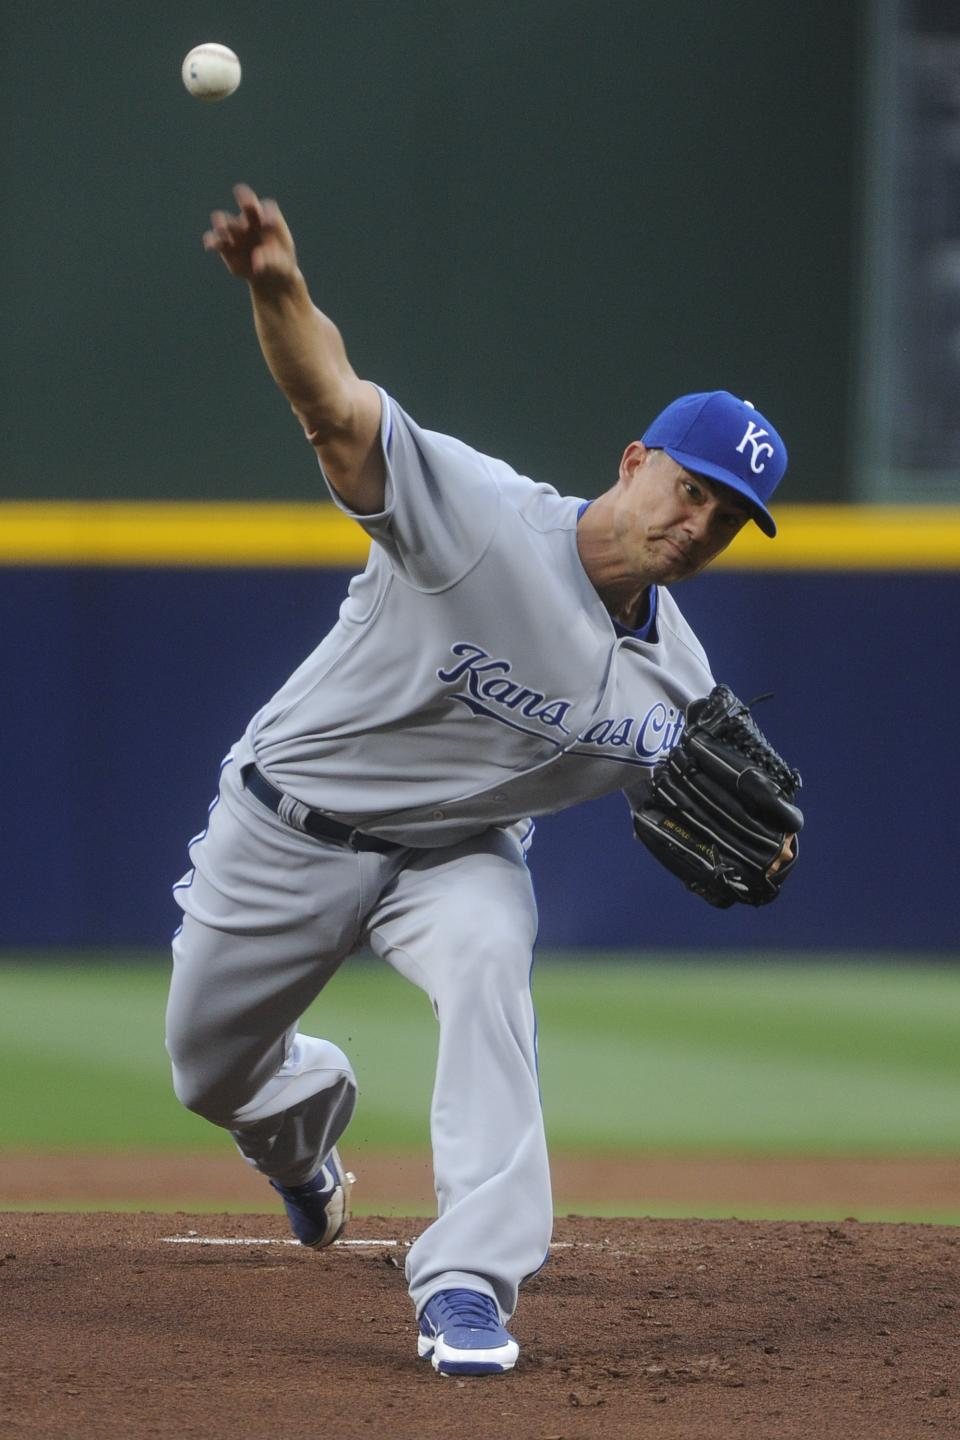 Kansas City Royals pitcher Jeremy Guthrie delivers in the first inning of a baseball game against the Atlanta Braves, Tuesday, April 16, 2013, in Atlanta. (AP Photo/John Amis)